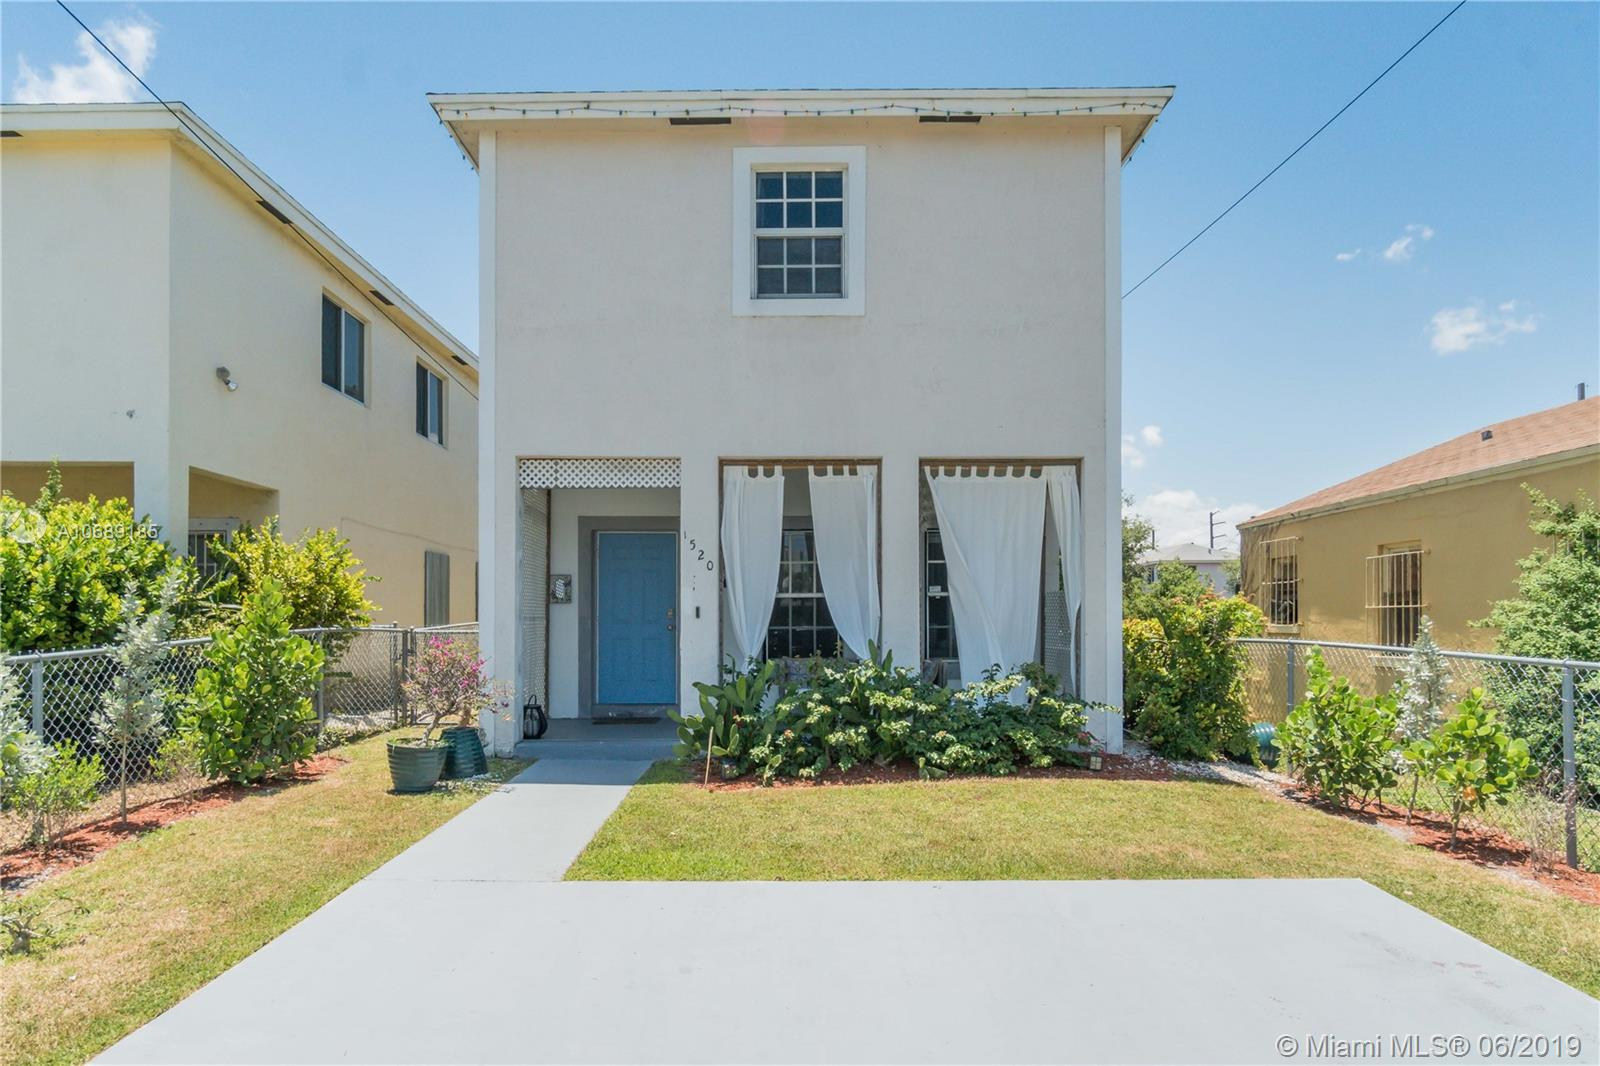 1520 NW 1st Ave, one of homes for sale in Grand Bahama Island